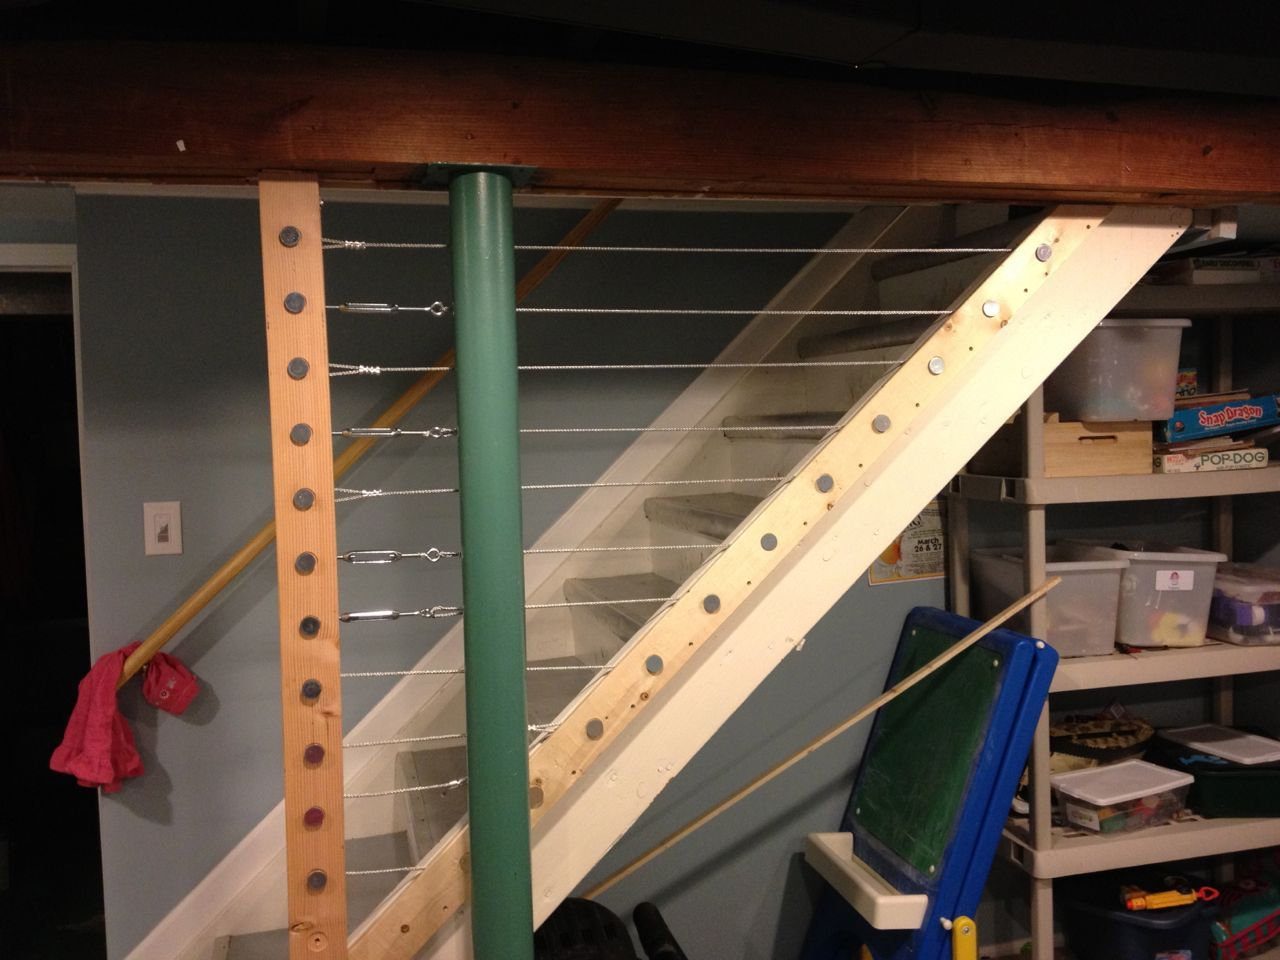 basement gym basement remodeling basement ideas cable railing stair